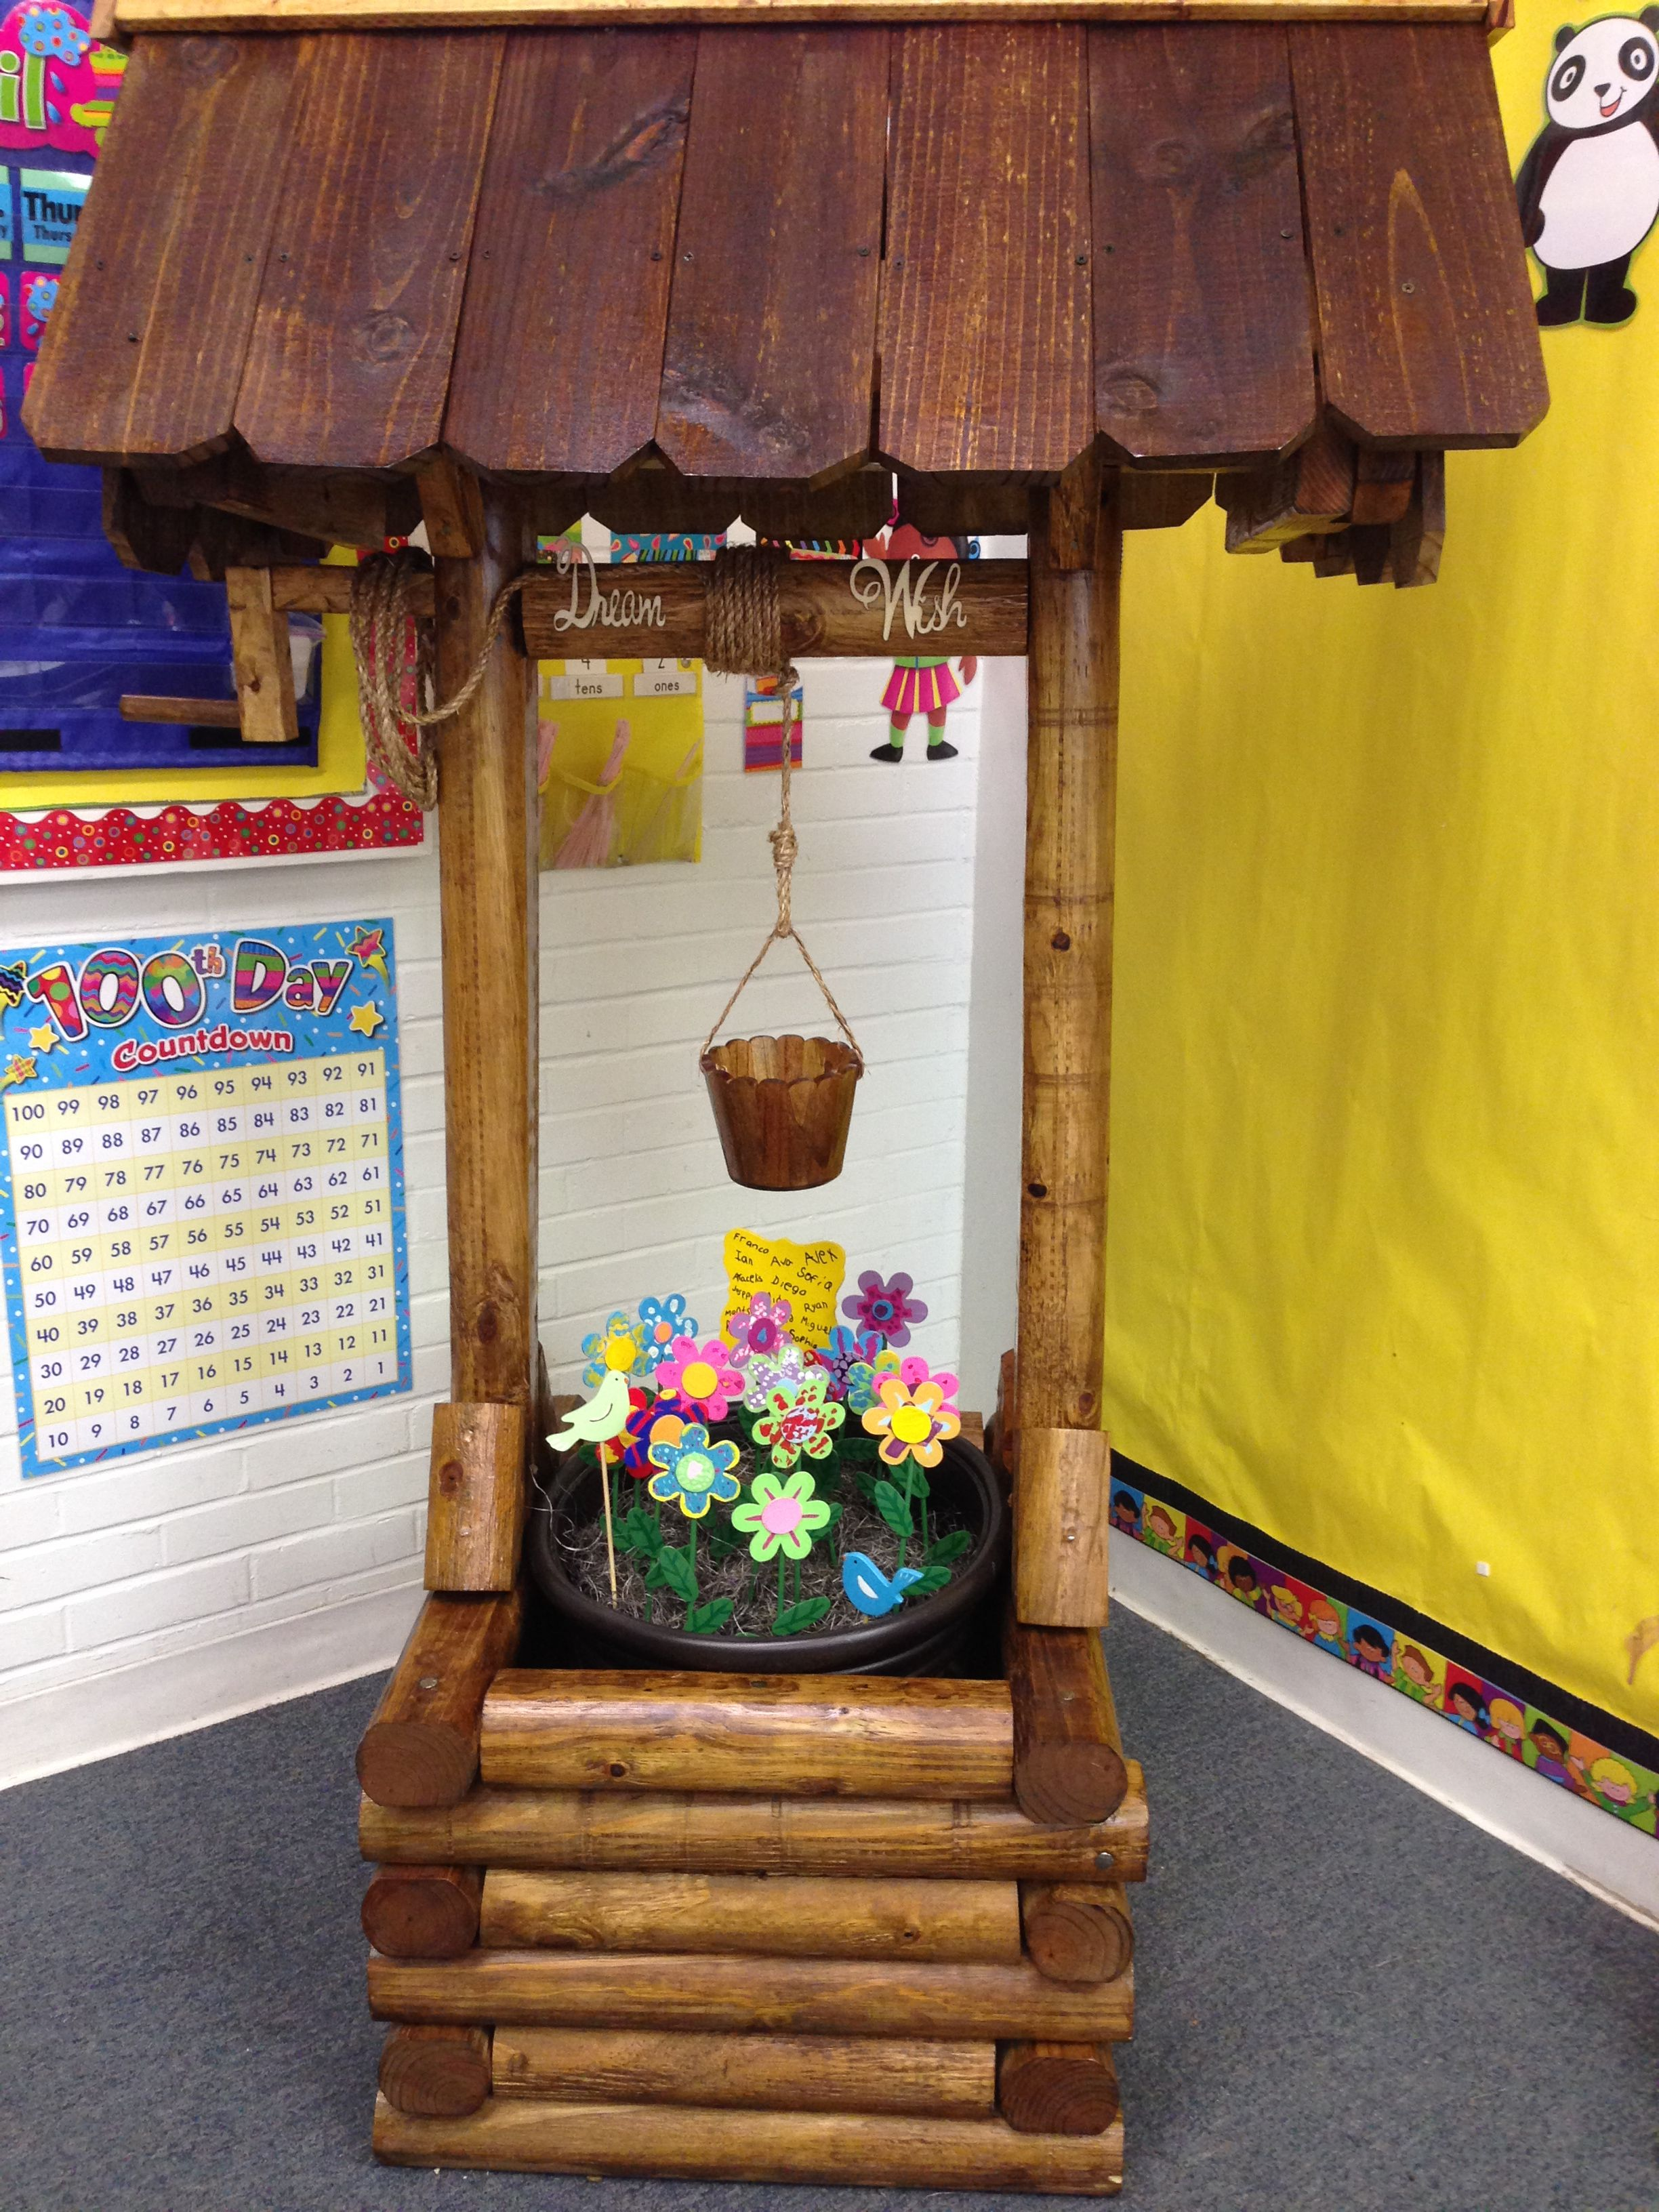 a wooden wishing well planter for a backyard or front yard decor